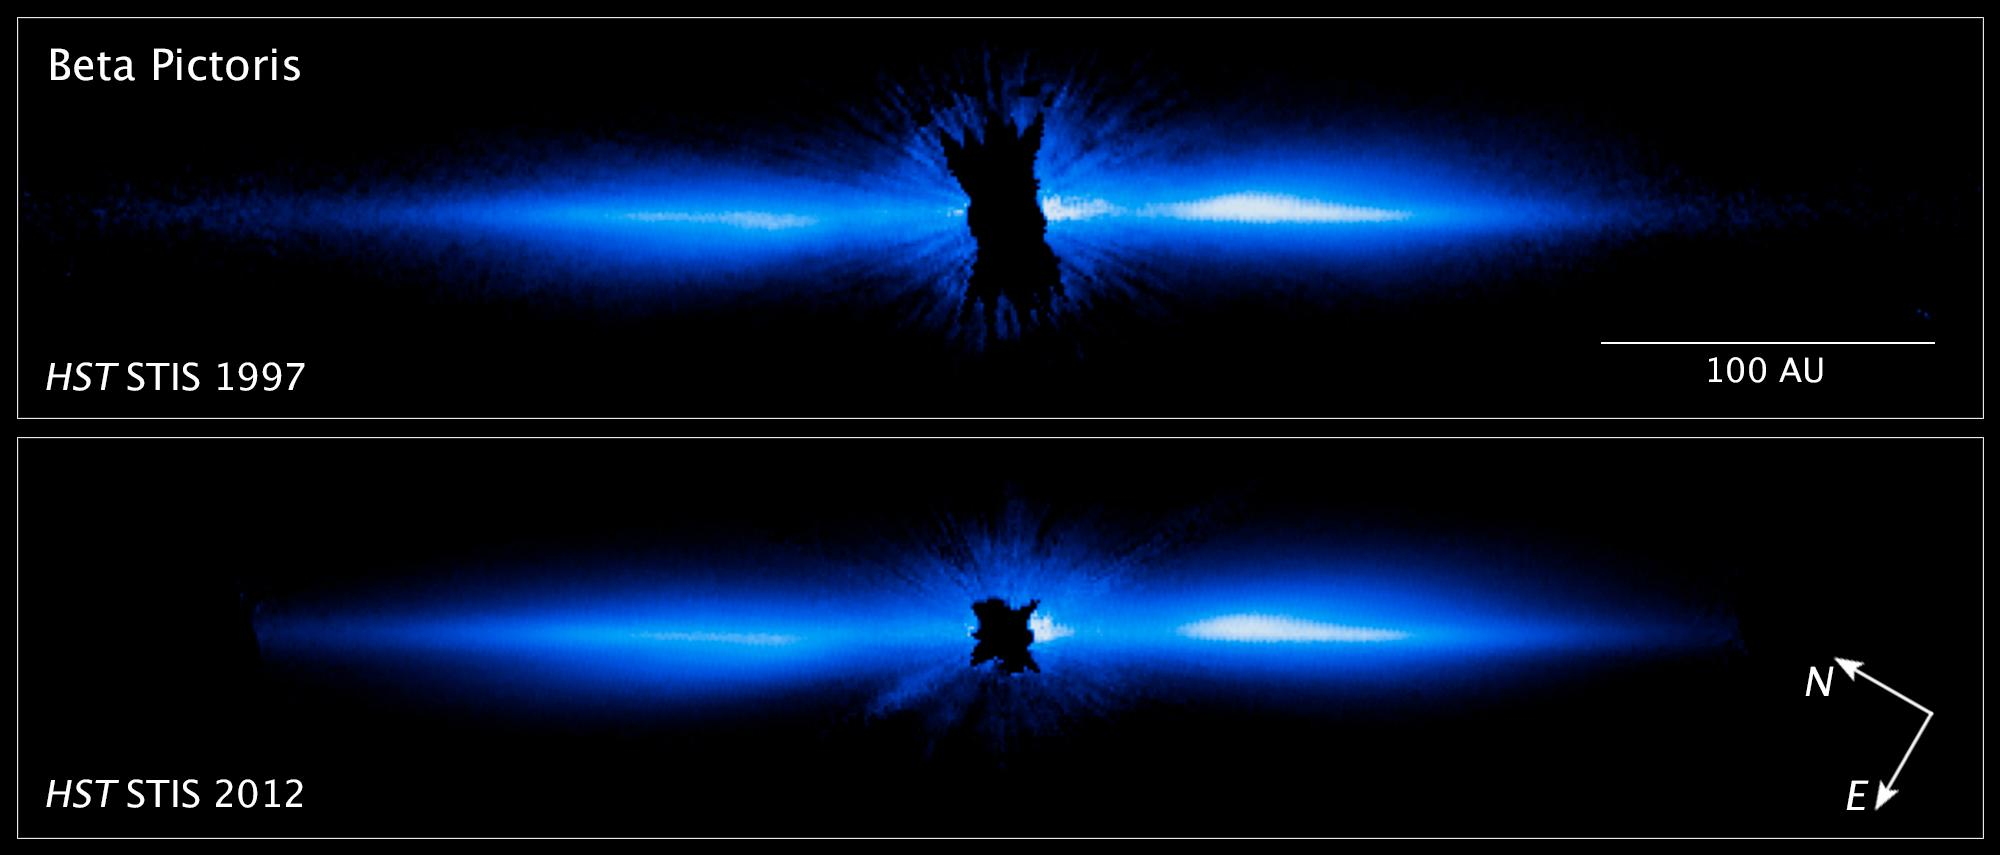 Comparing Hubble images of the gas-and-dust disk encircling the young star Beta Pictoris taken in 1997  and 2012 , astronomers find that the disk's dust distribution has barely changed over 15 years despite the fact that the entire structure is orbiting t